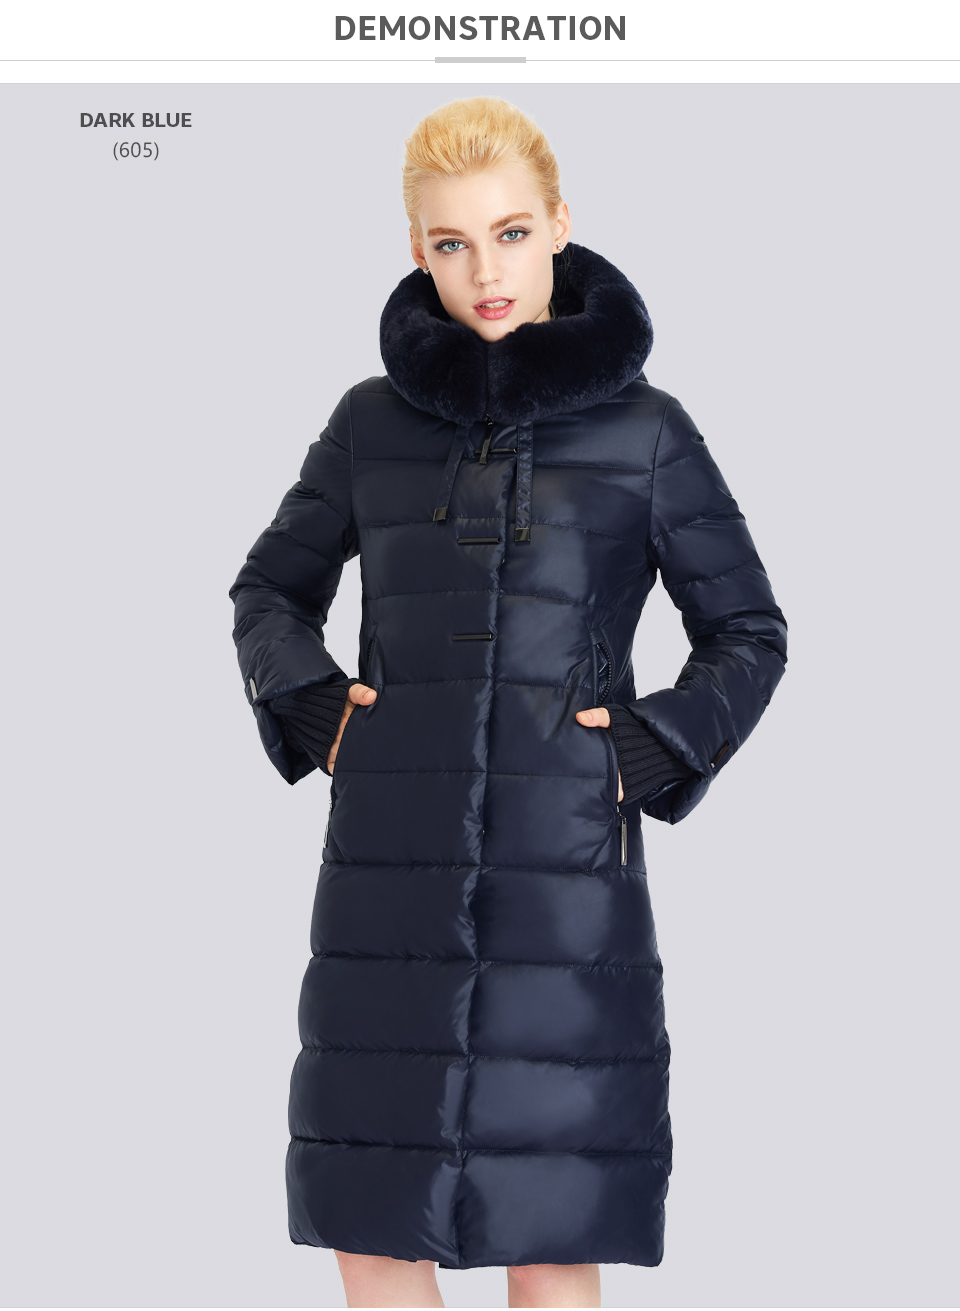 Medium Length Winter Jacket